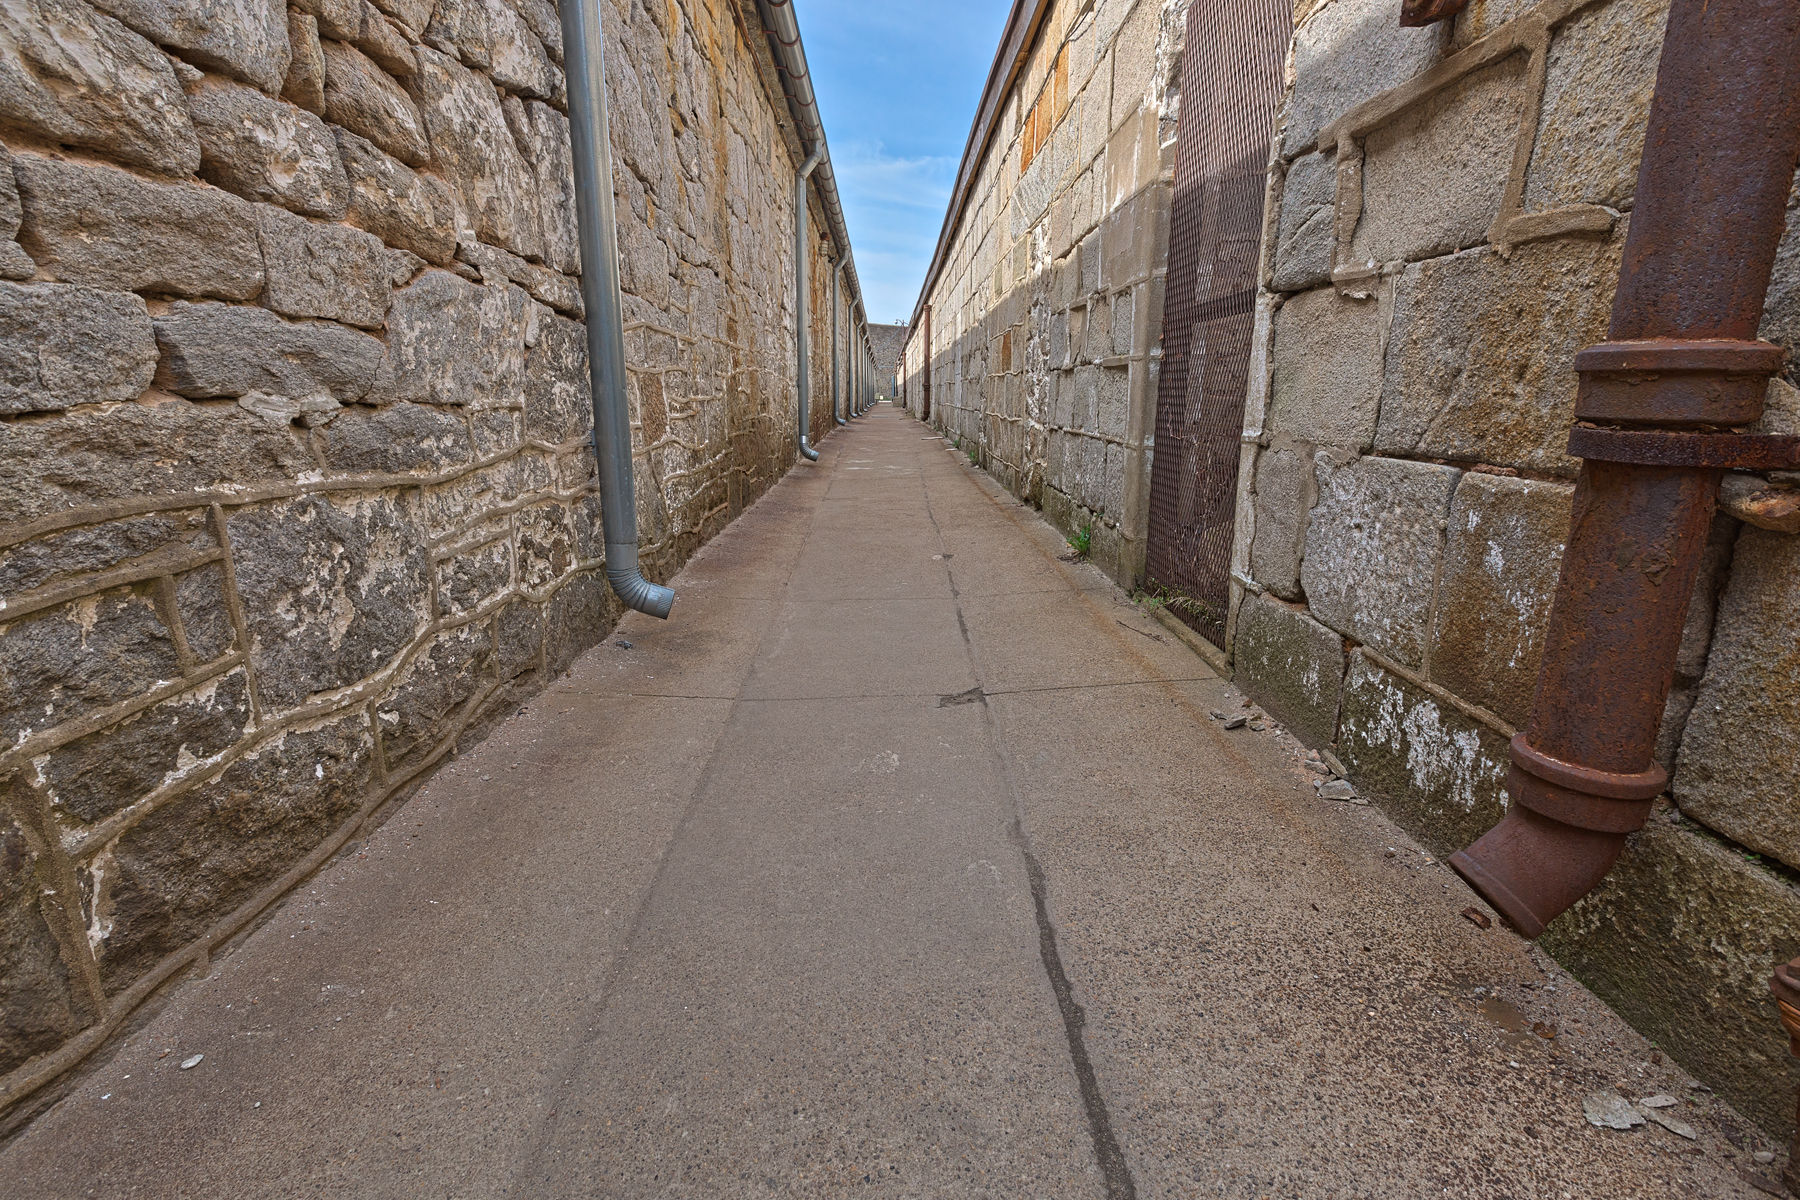 Prison alley - hdr photo